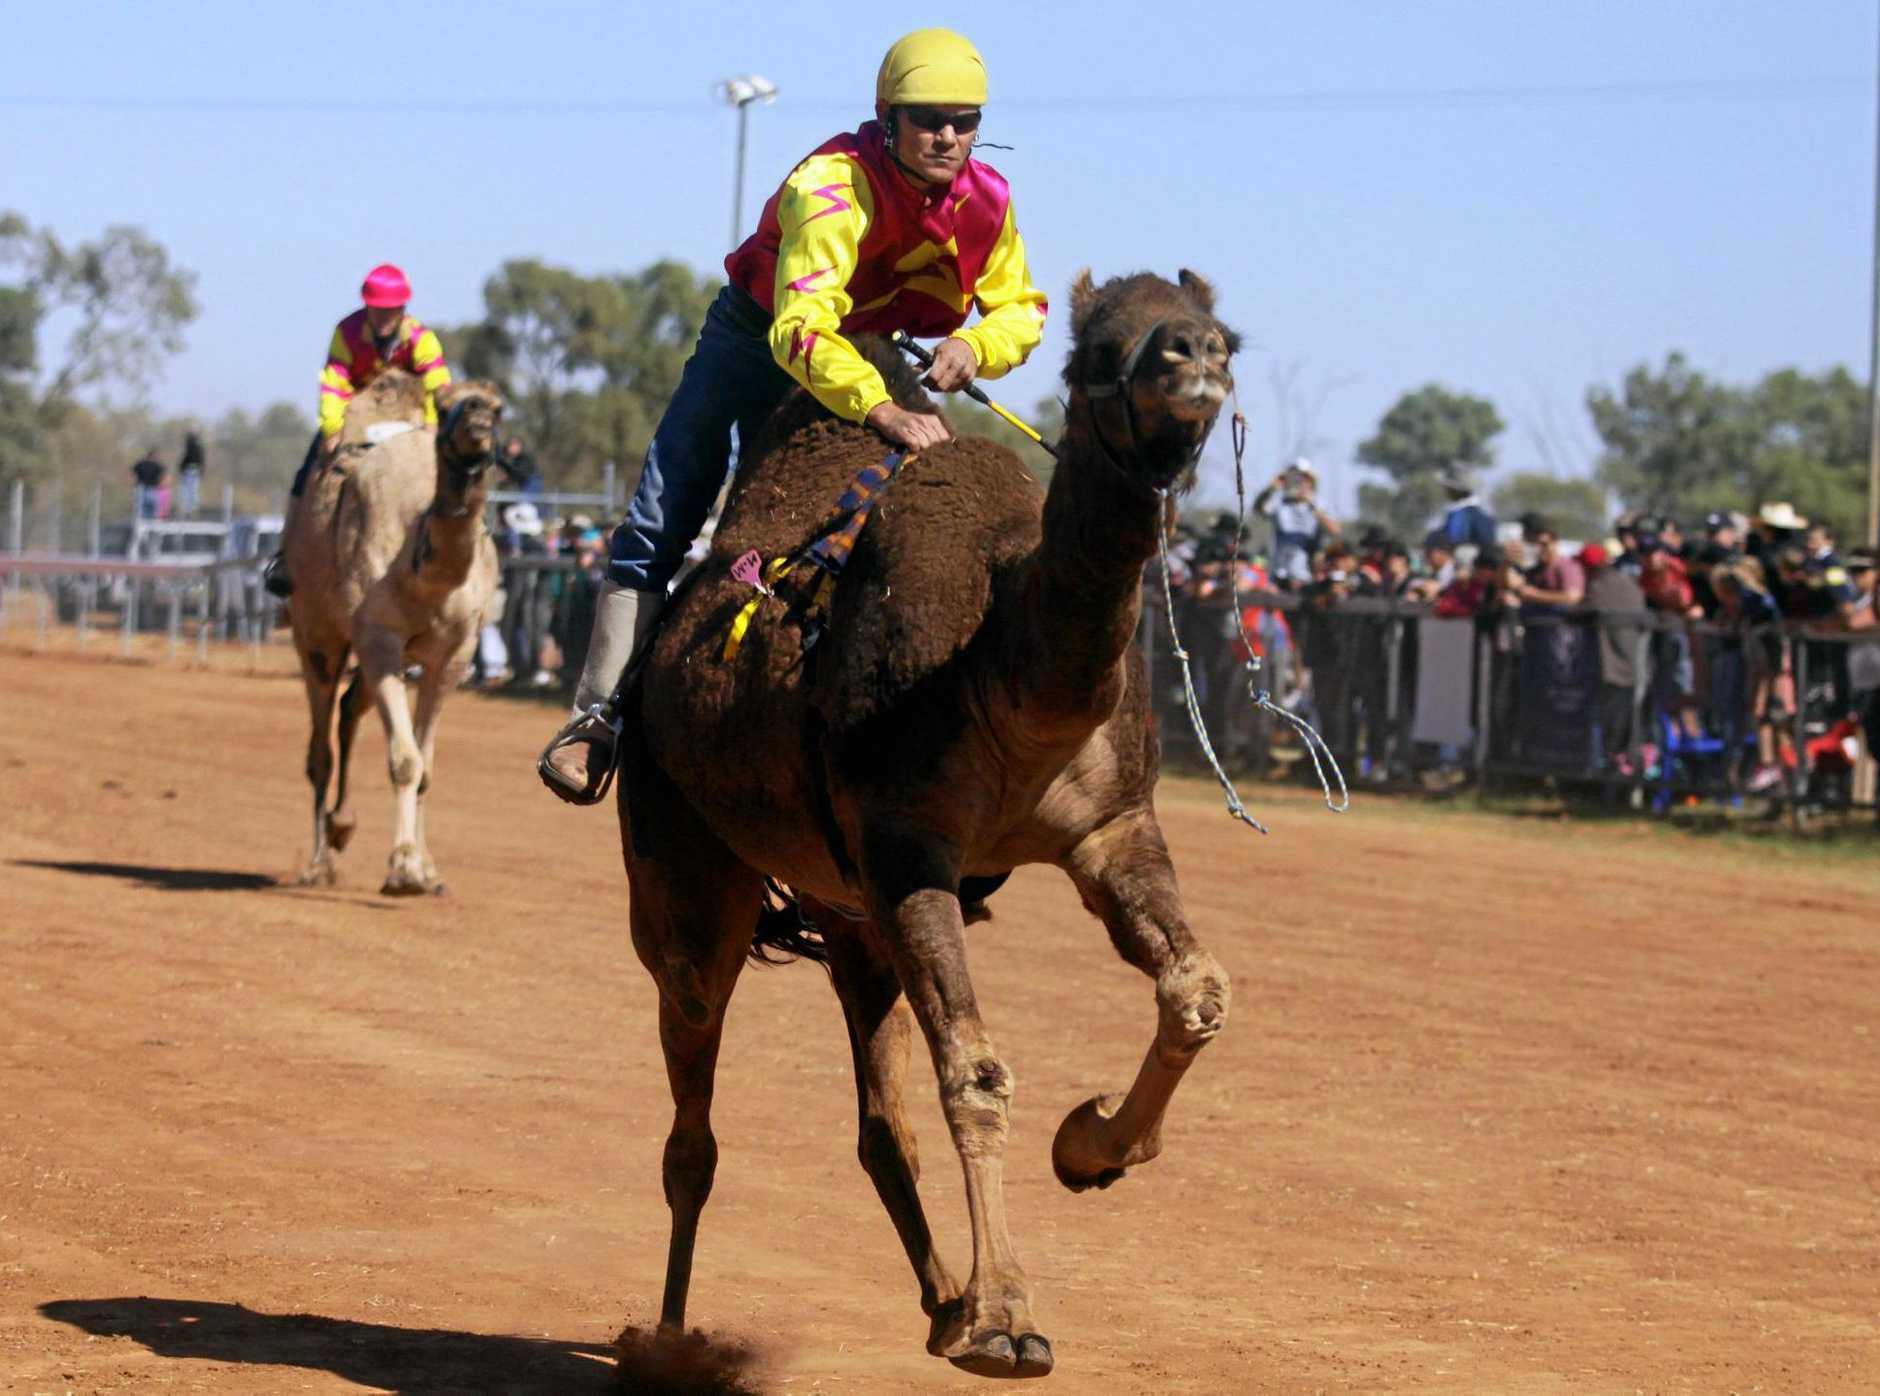 AND THEY'RE OFF: Jockeys hold on rather than steer camels across the line at the Boulia camel races.